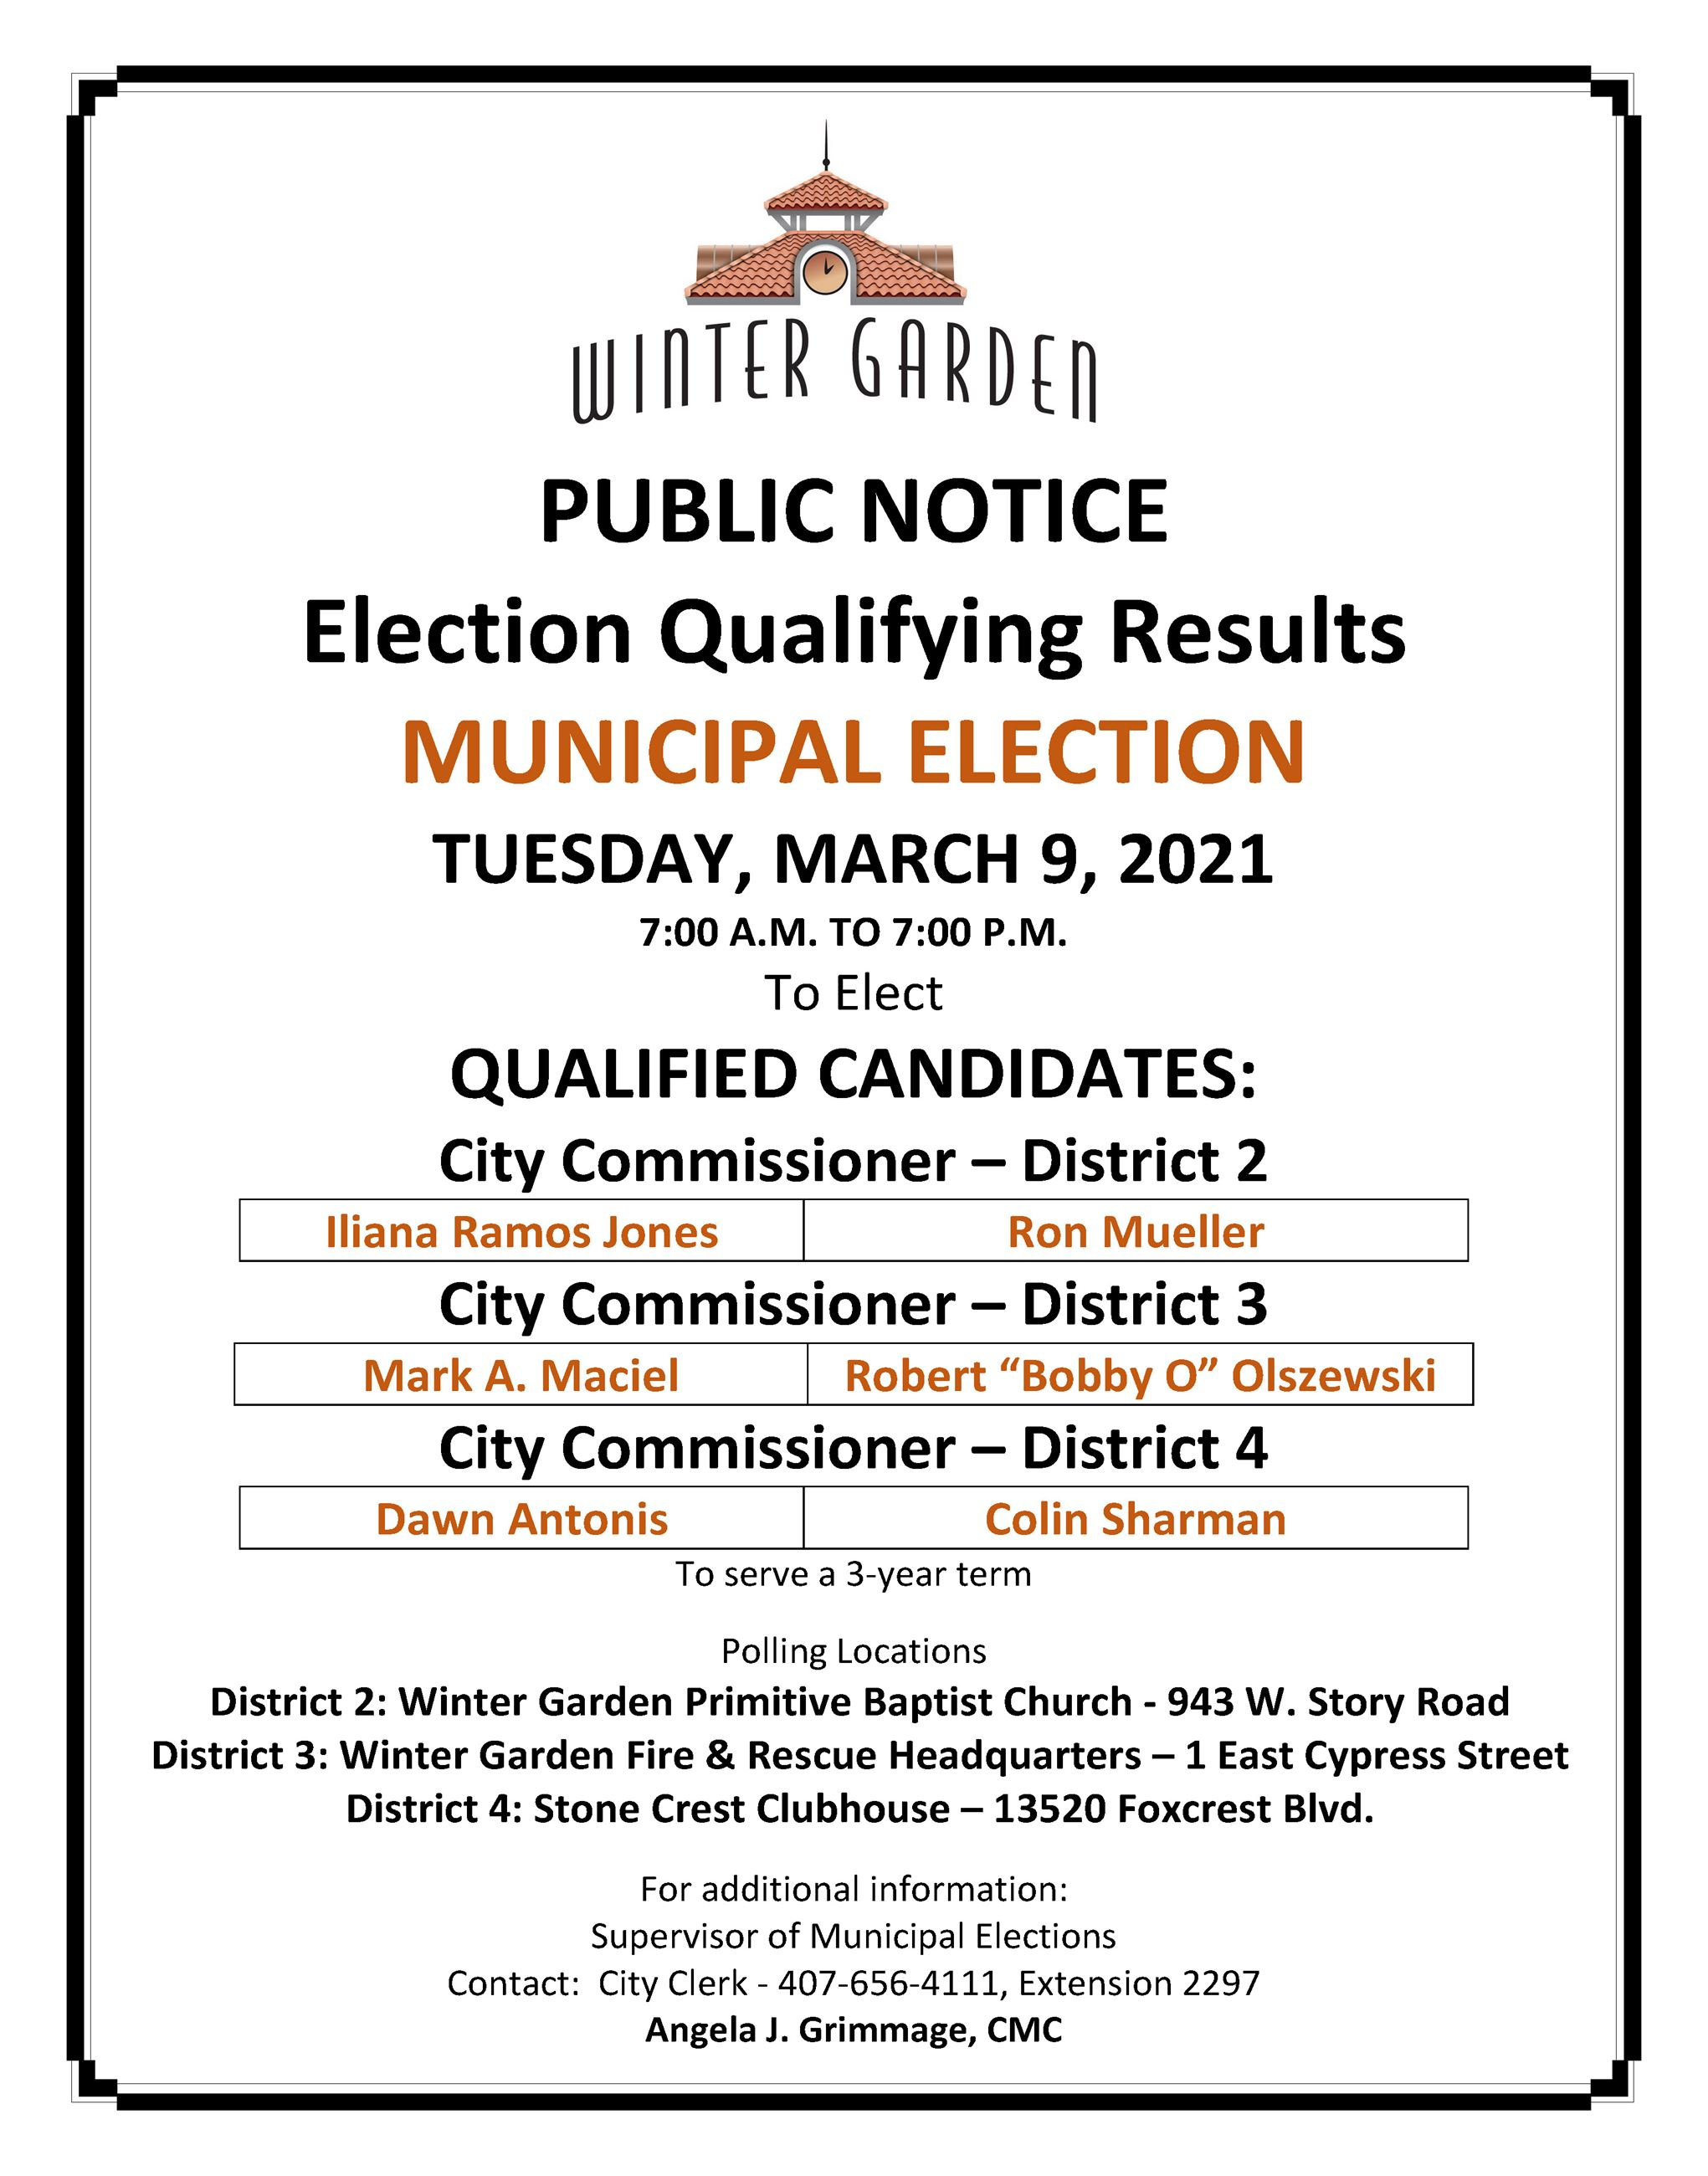 2021 - NOTICE OF MUNICIPAL ELECTION - MARCH 9 2021- QUALIFY RESULTS